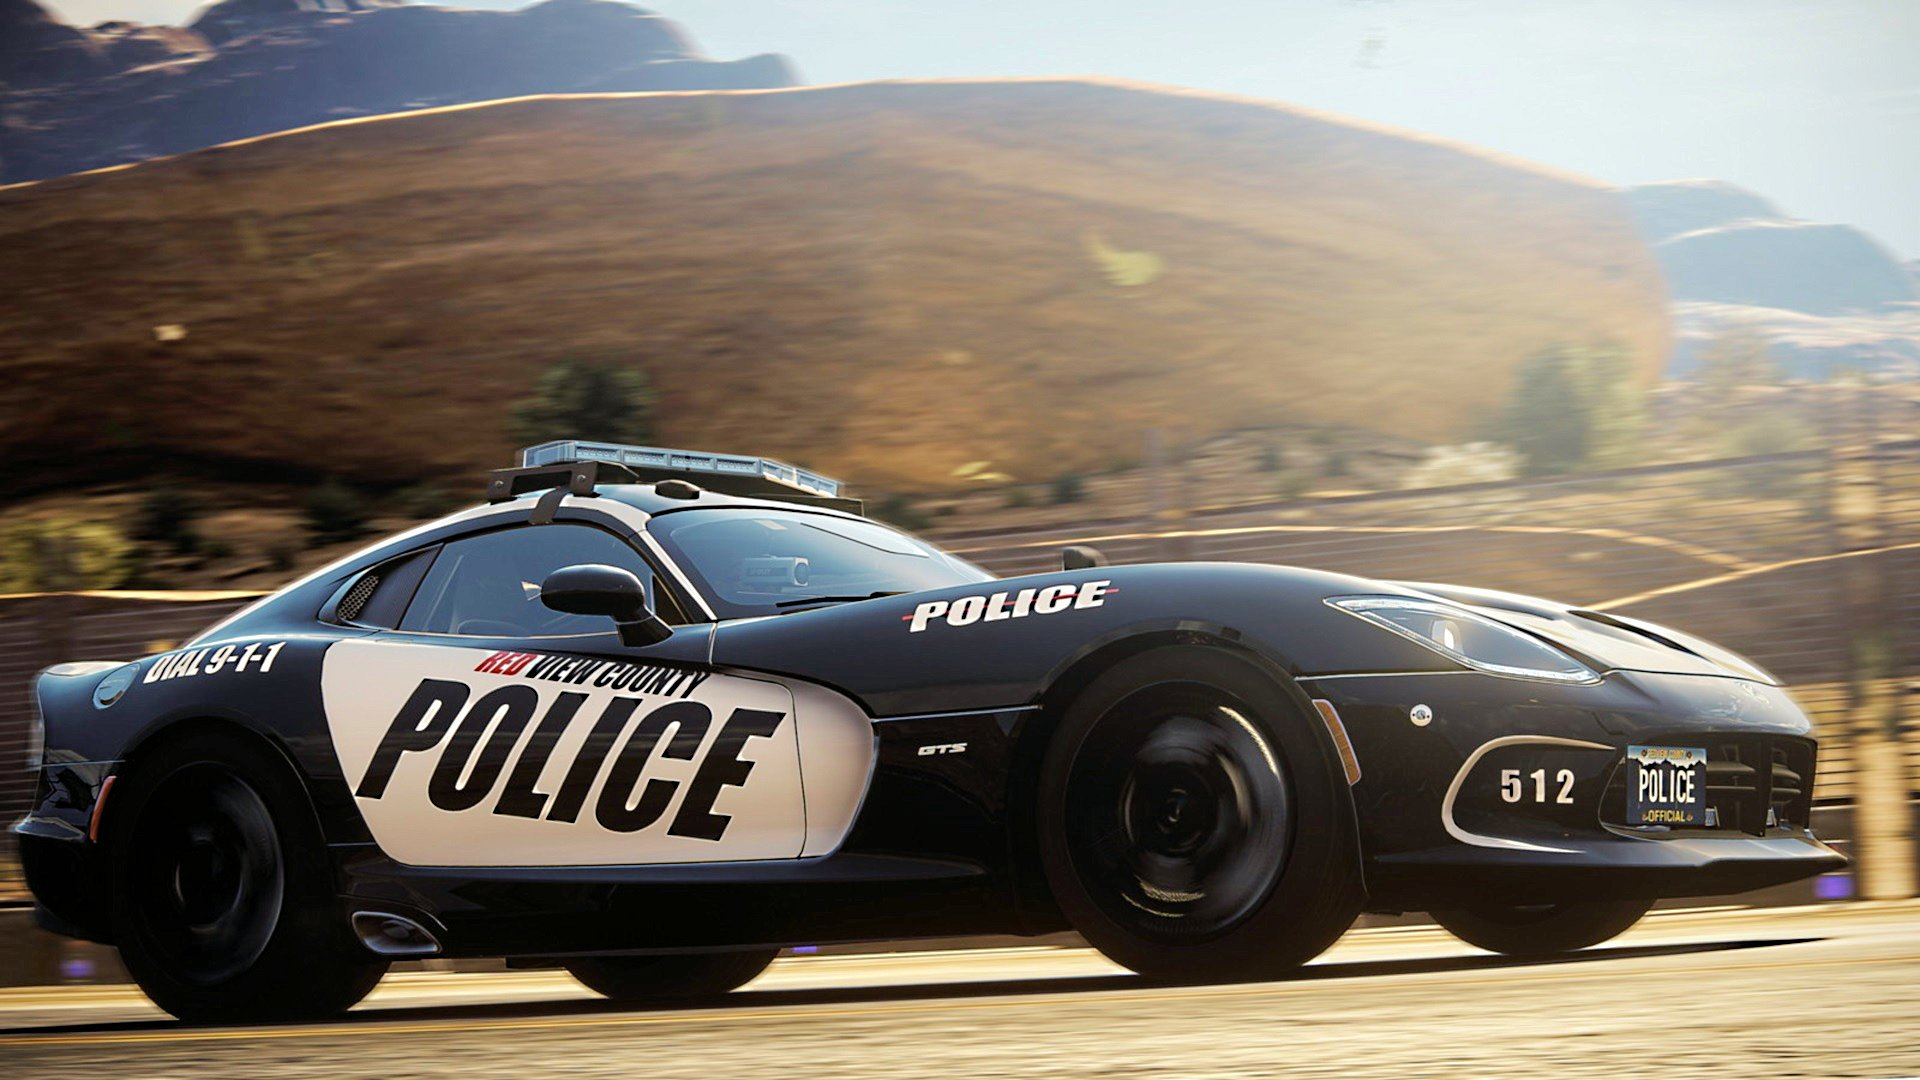 Hd Wallpapers Need For Speed Rivals Full Hd Wallpaper And Background